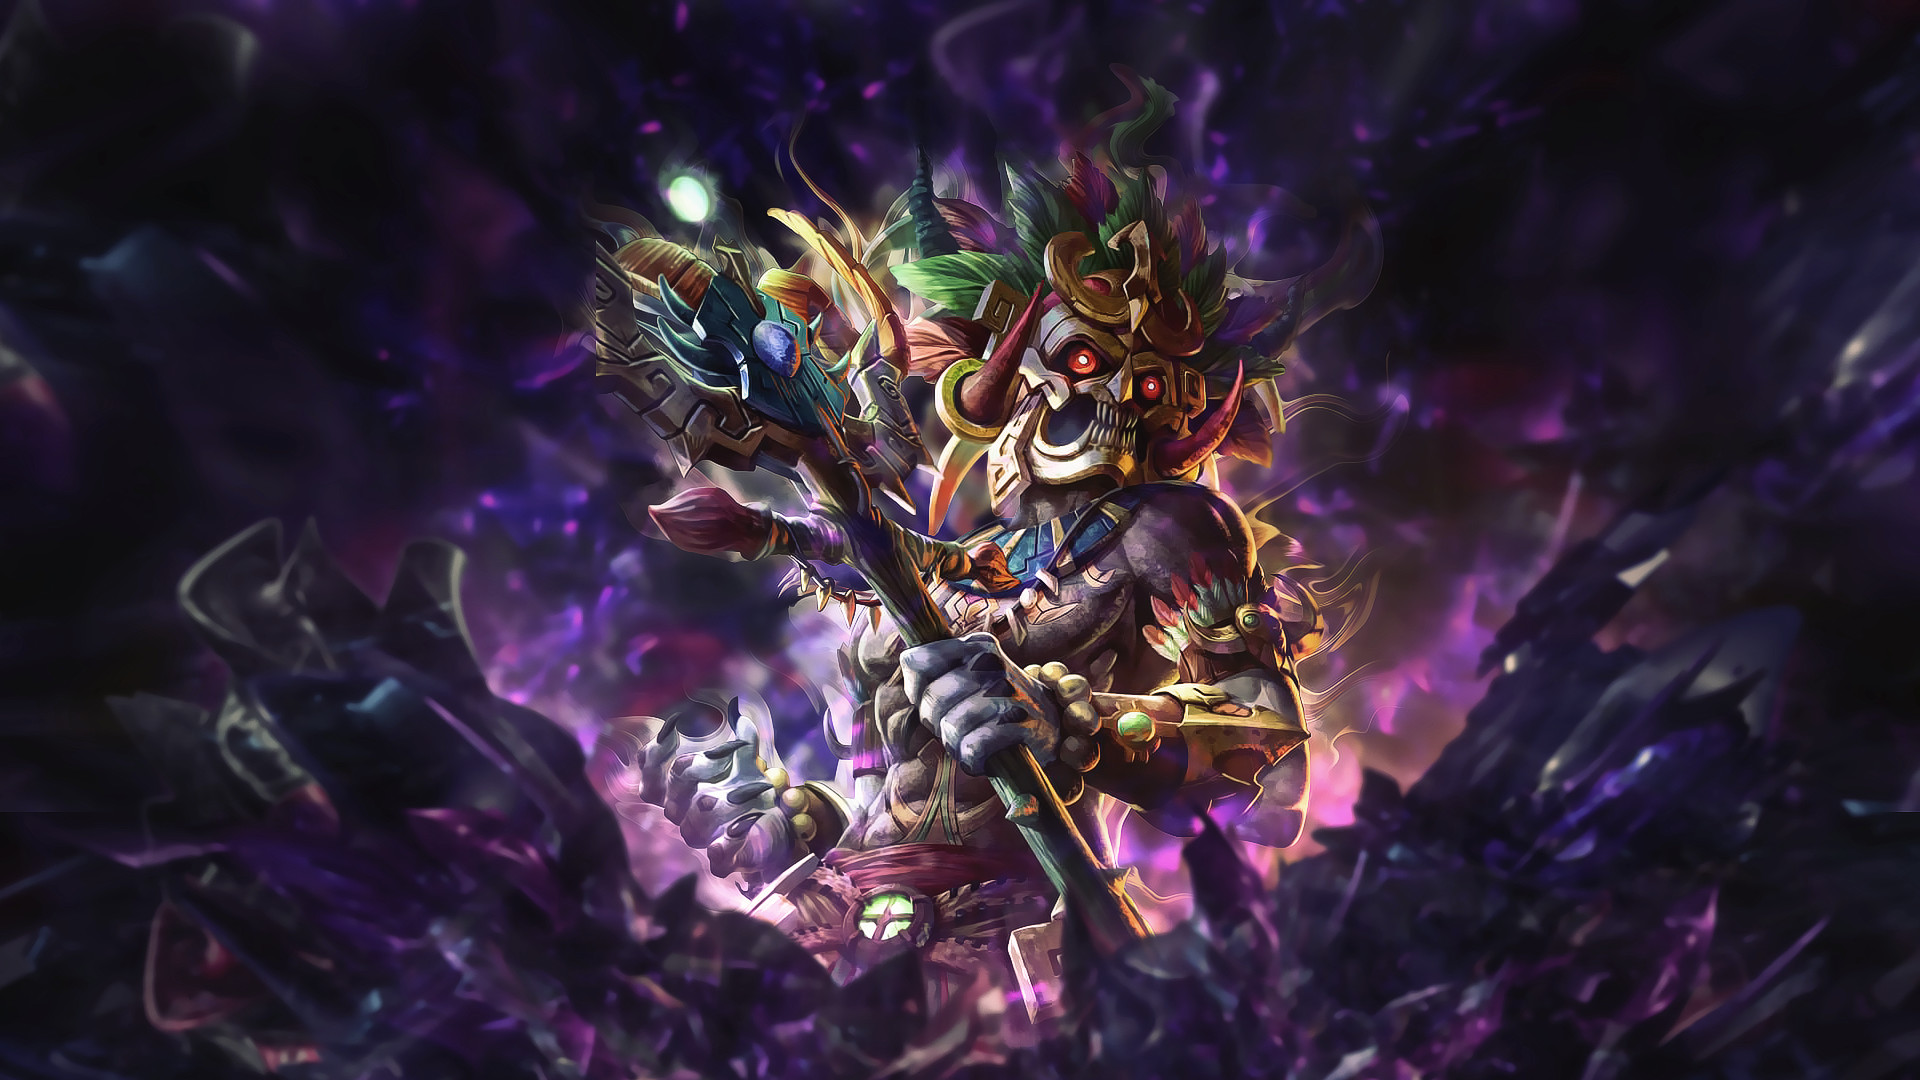 Video Game – Smite Video Game Ah Puch (Smite) Wallpaper